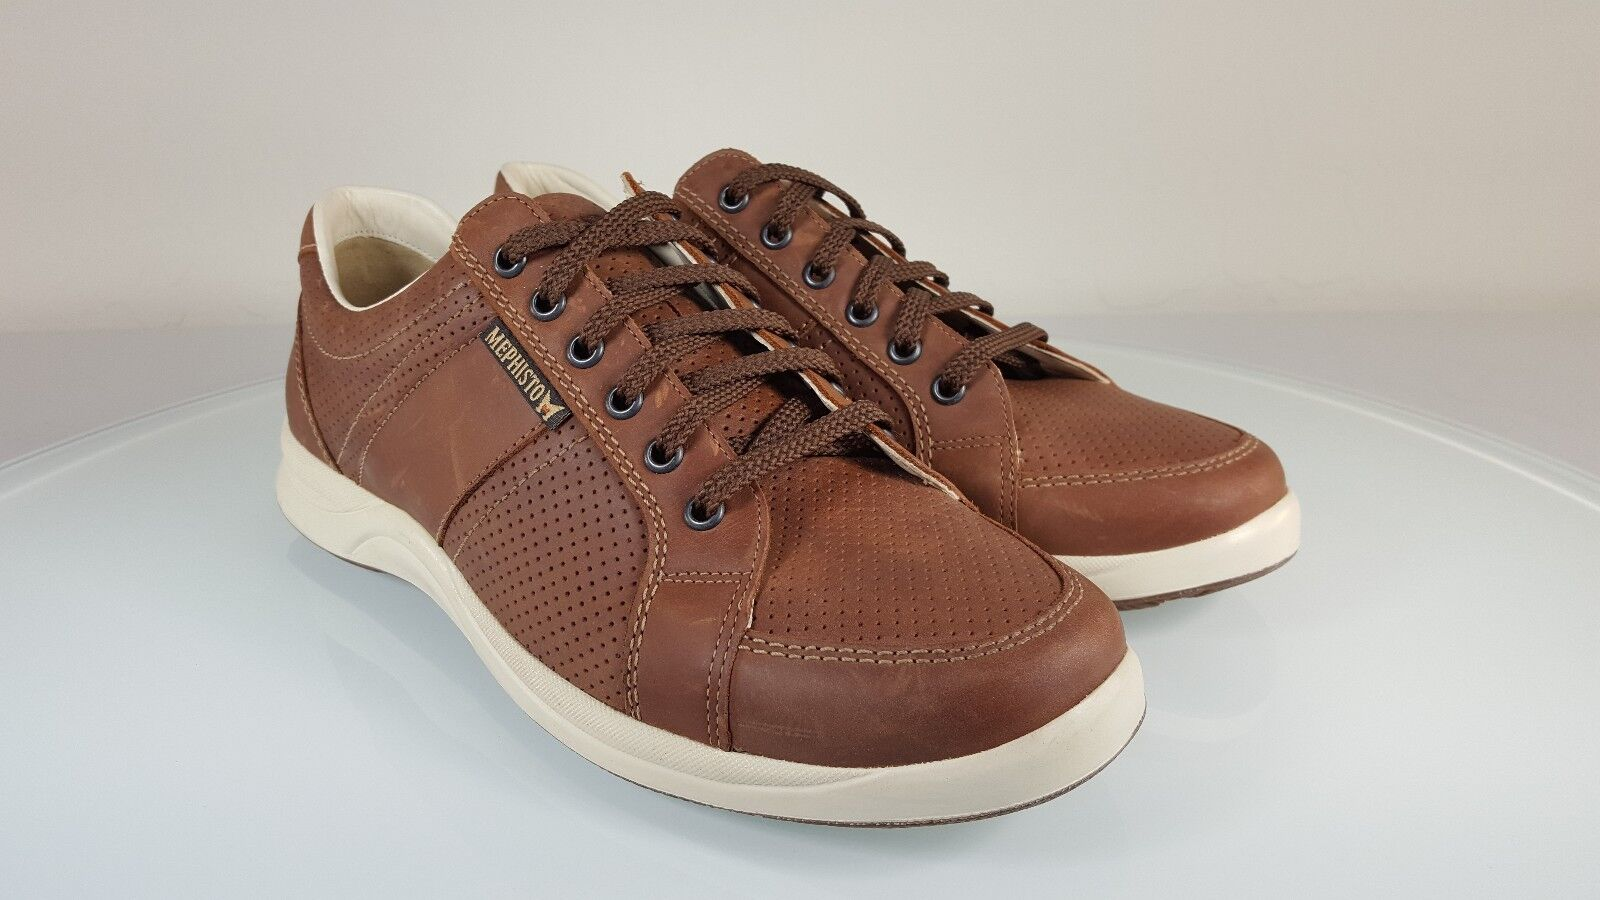 MEPHISTO 'HERO' MENS BROWN PERFORATED LEATHER SNEAKERS US 8 M